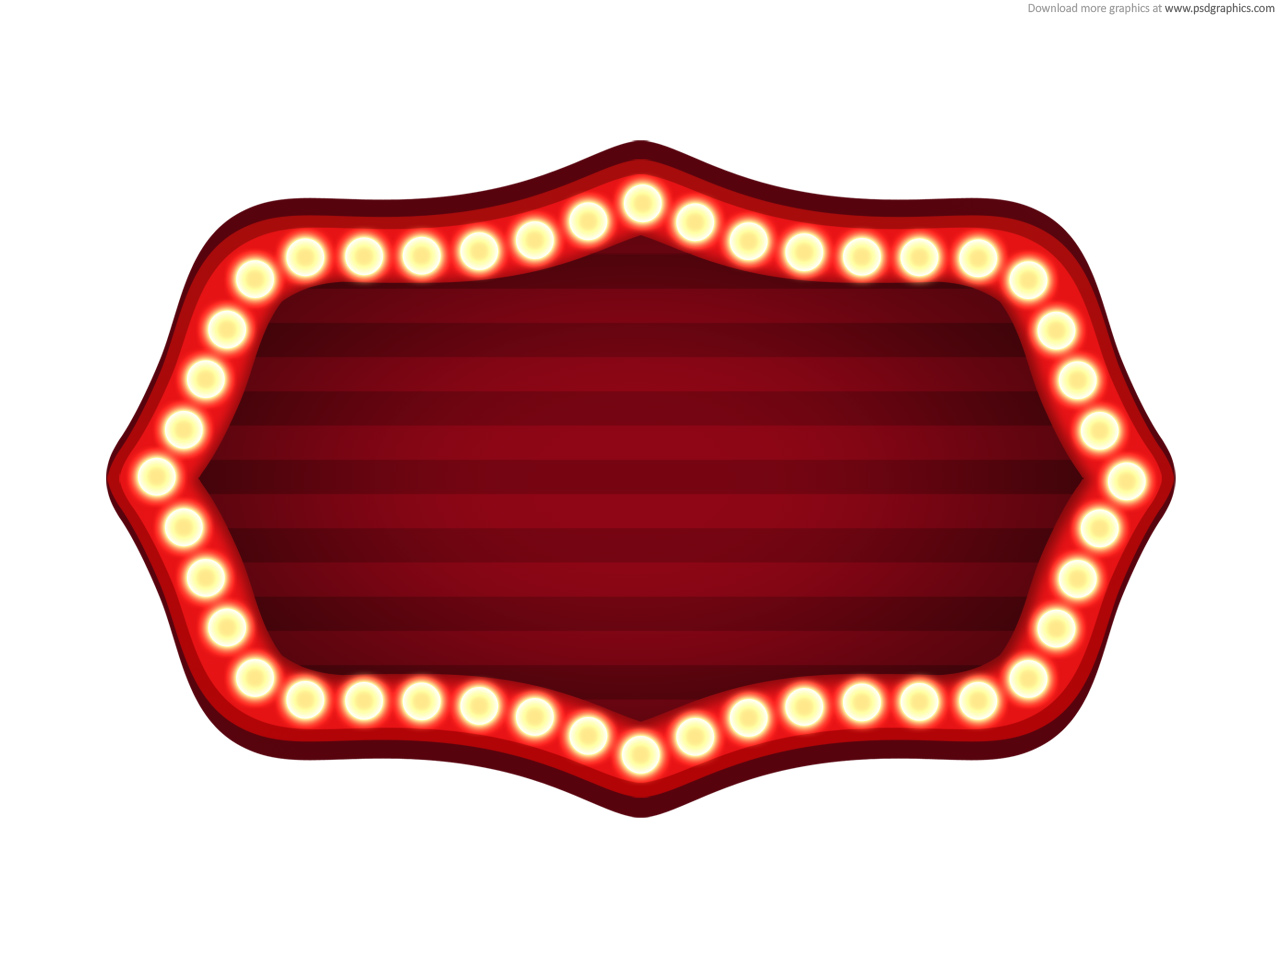 Broadway Marquee Lights Clipart - Clipart Kid